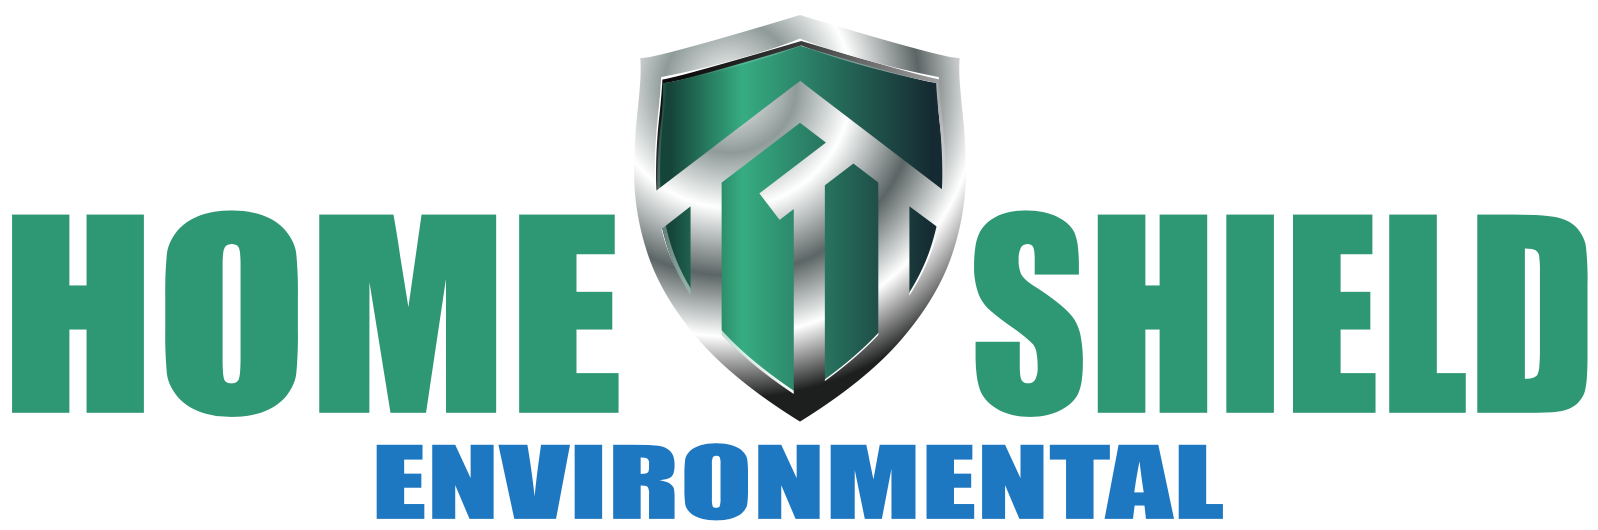 Home Shield Environmental - Home Inspection Company - Denver, Colorado